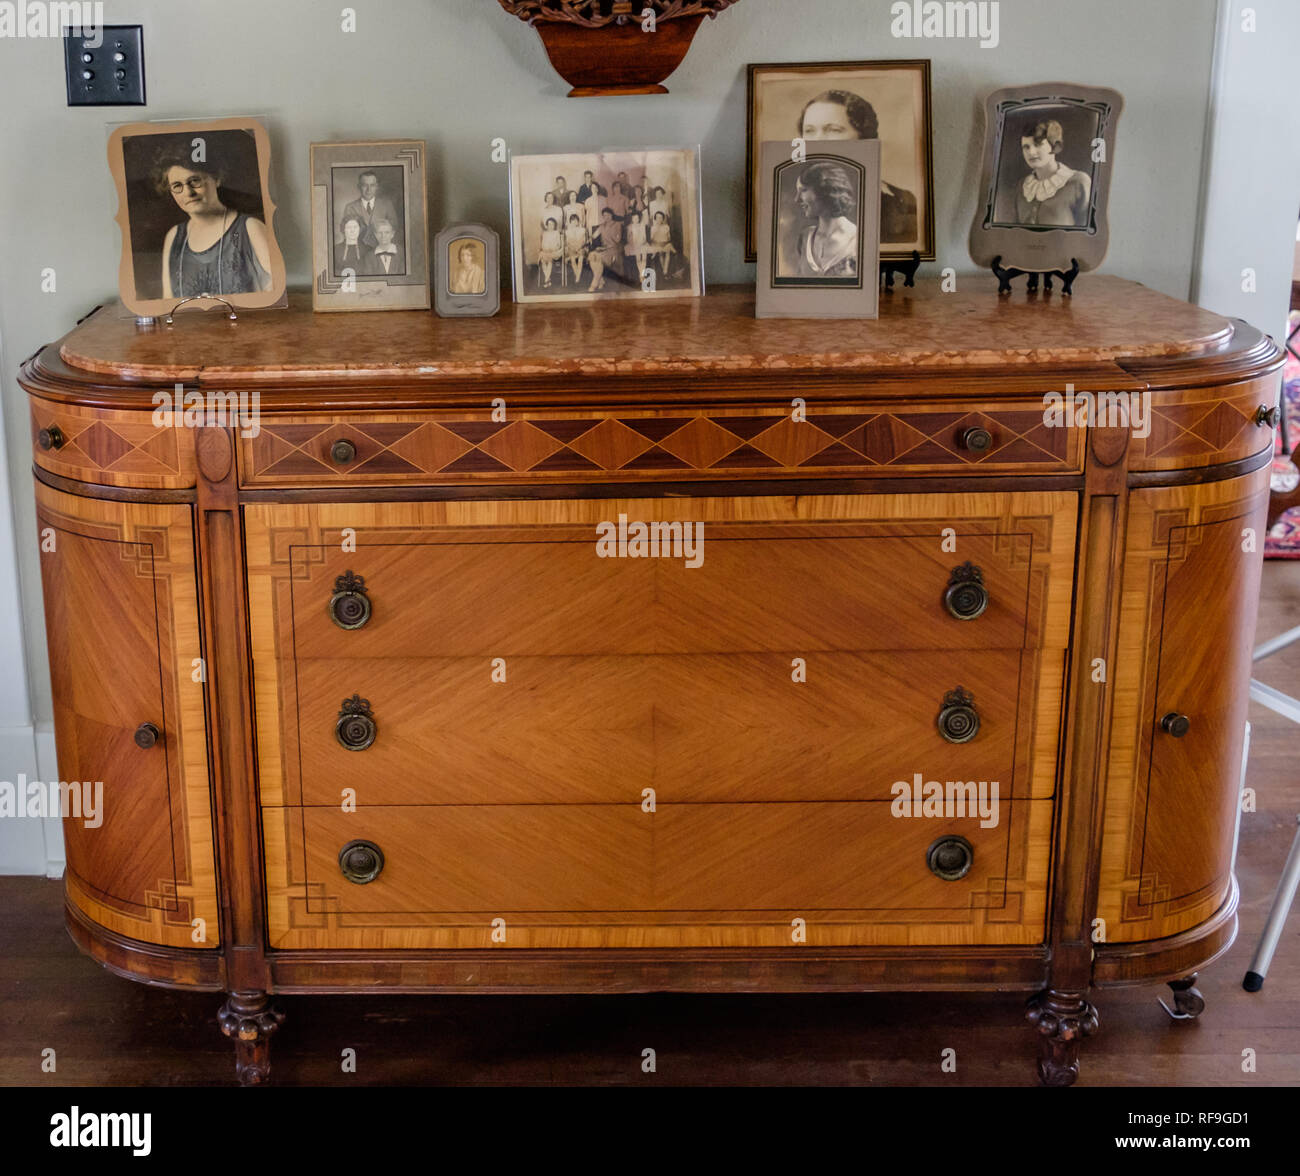 Antique light brown dining room sideboard with 3 large drawers,2 curved side doors & marble top. Monotone vintage family photos in frames on top. - Stock Image